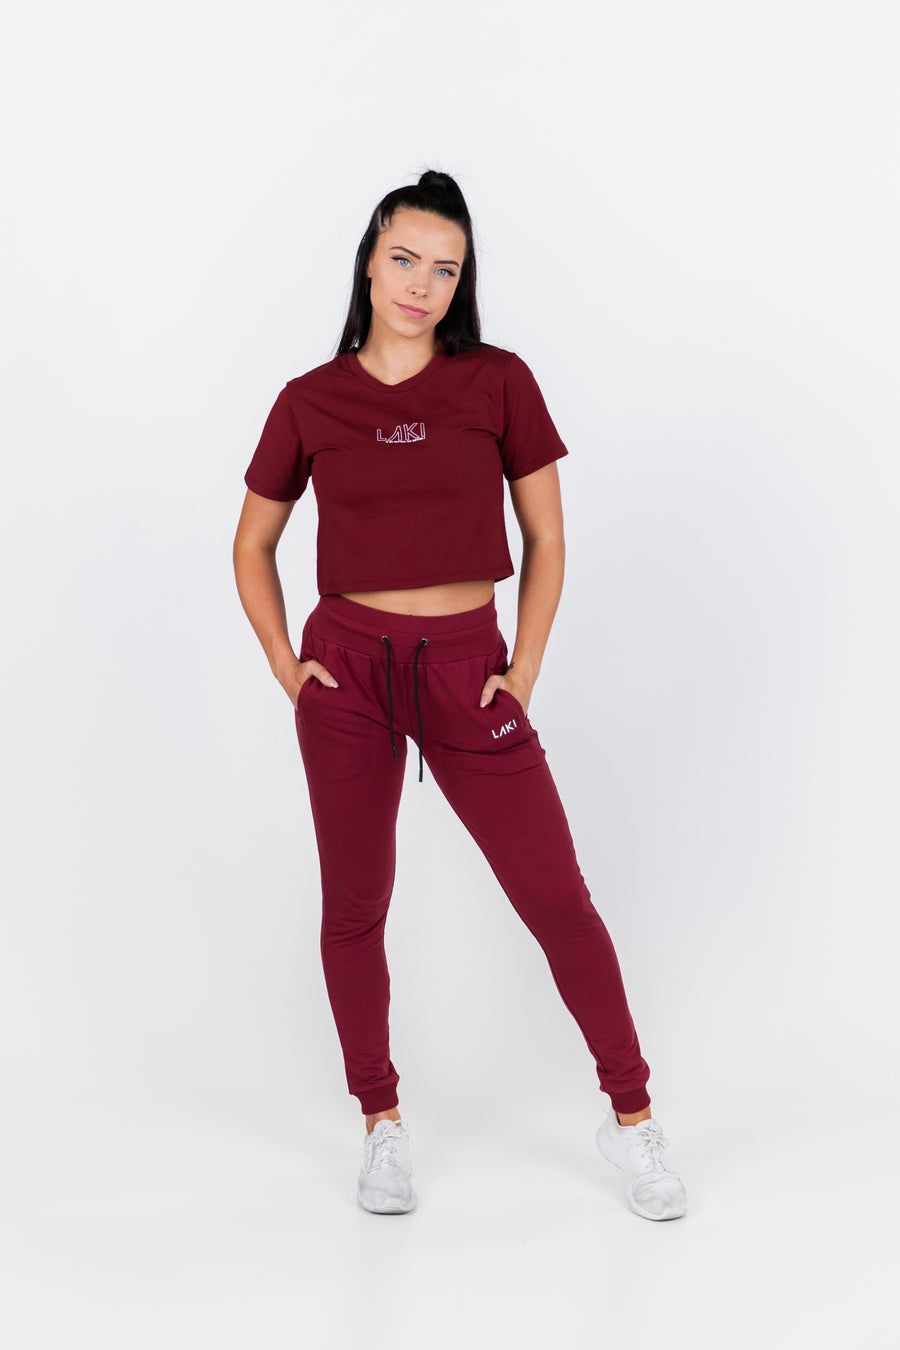 STATEMENT CROP TEE - SANGRIA